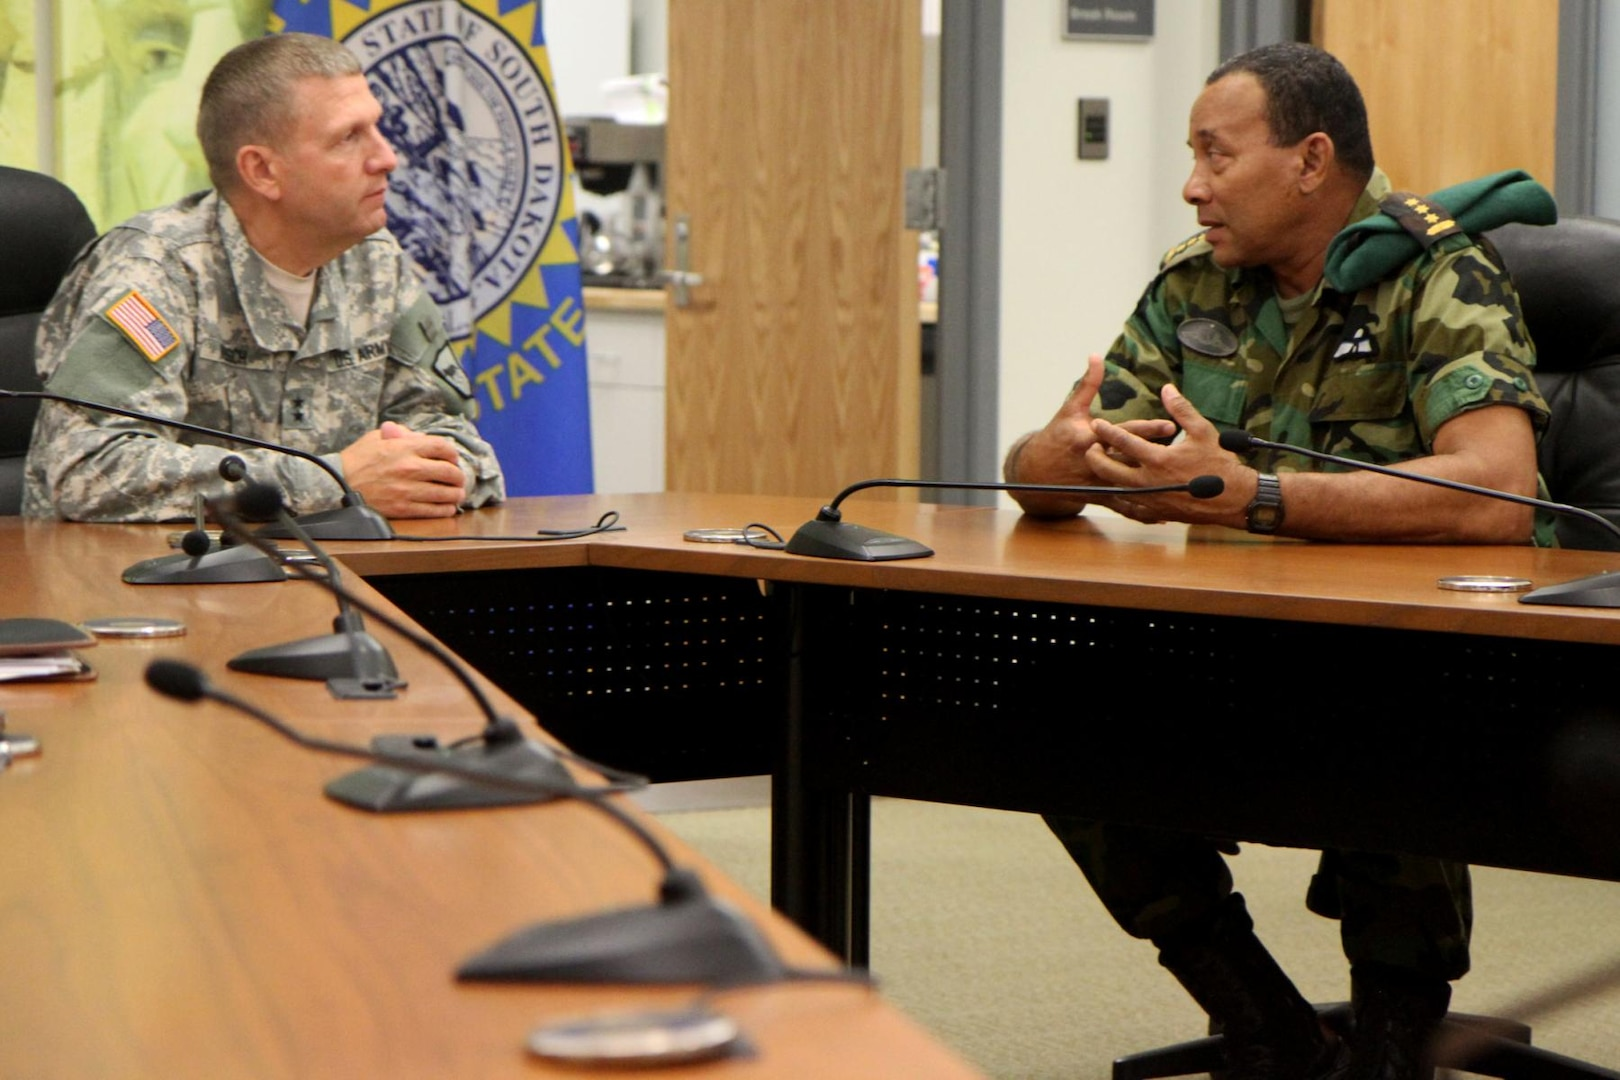 Maj. Gen Timothy Reisch, adjutant general of the South Dakota National Guard, meets with Col. Adolf Jardim, deputy commander of the Suriname Armed Forces, during the Reserve Forces Subject Matter Expert Exchange at Camp Rapid, S.D., July 11, 2014.